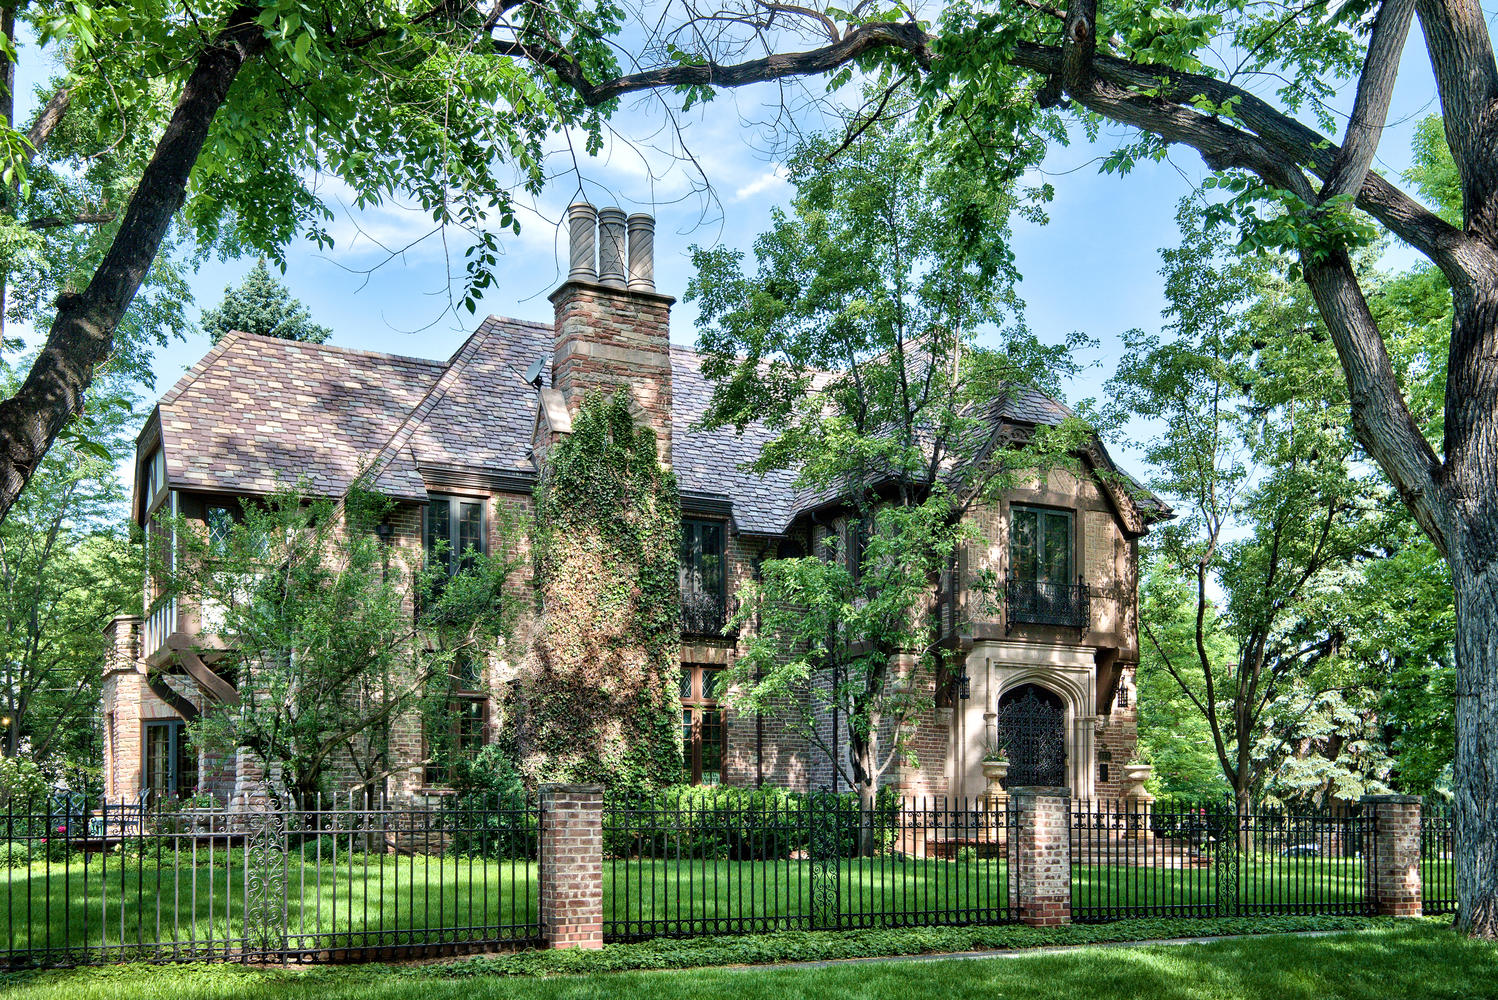 Moradia para Venda às Spectacular Tudor on a Beautiful Half Acre in Historic Denver Country Club 177 Humboldt Street Denver, Colorado, 80218 Estados Unidos